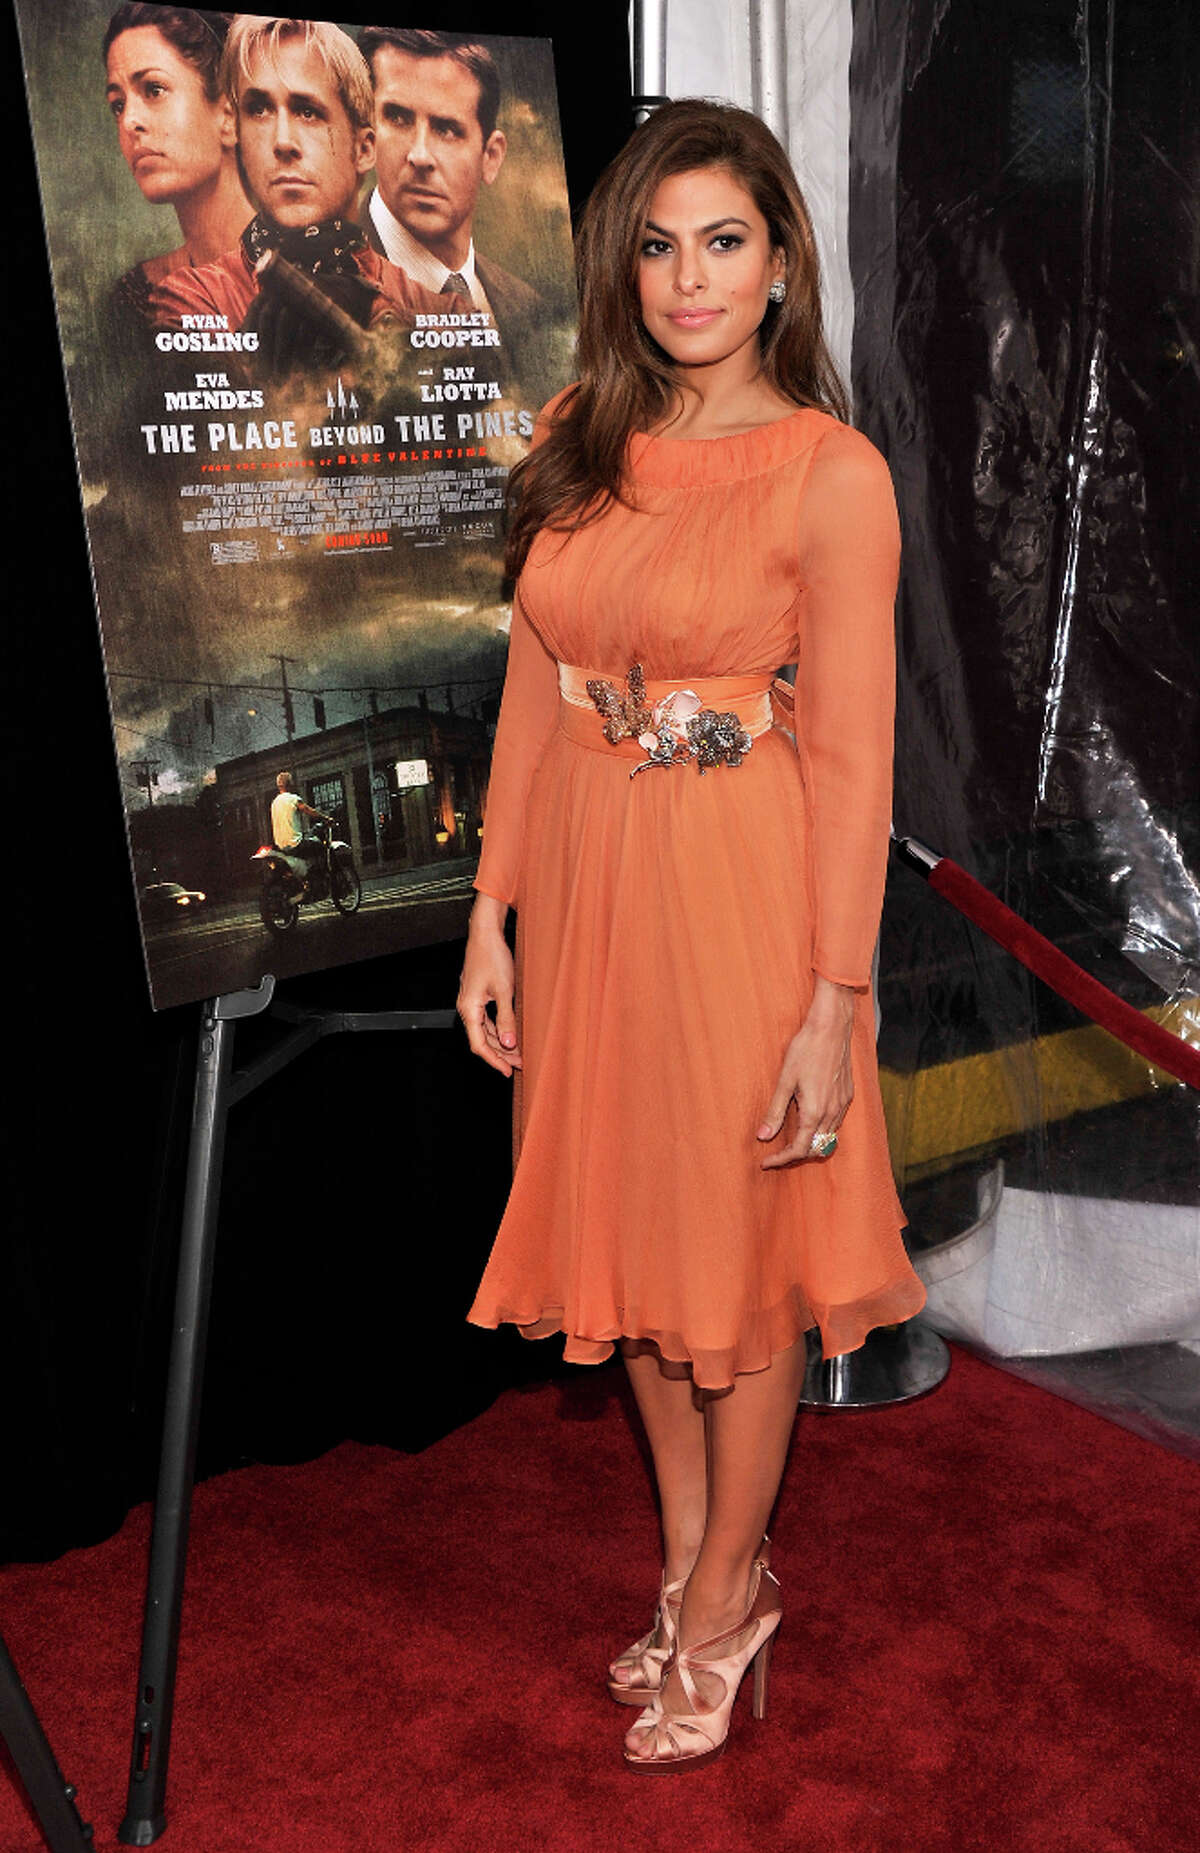 Actress Eva Mendes attends 'The Place Beyond The Pines' New York Premiere at Landmark Sunshine Cinema on March 28, 2013 in New York City.